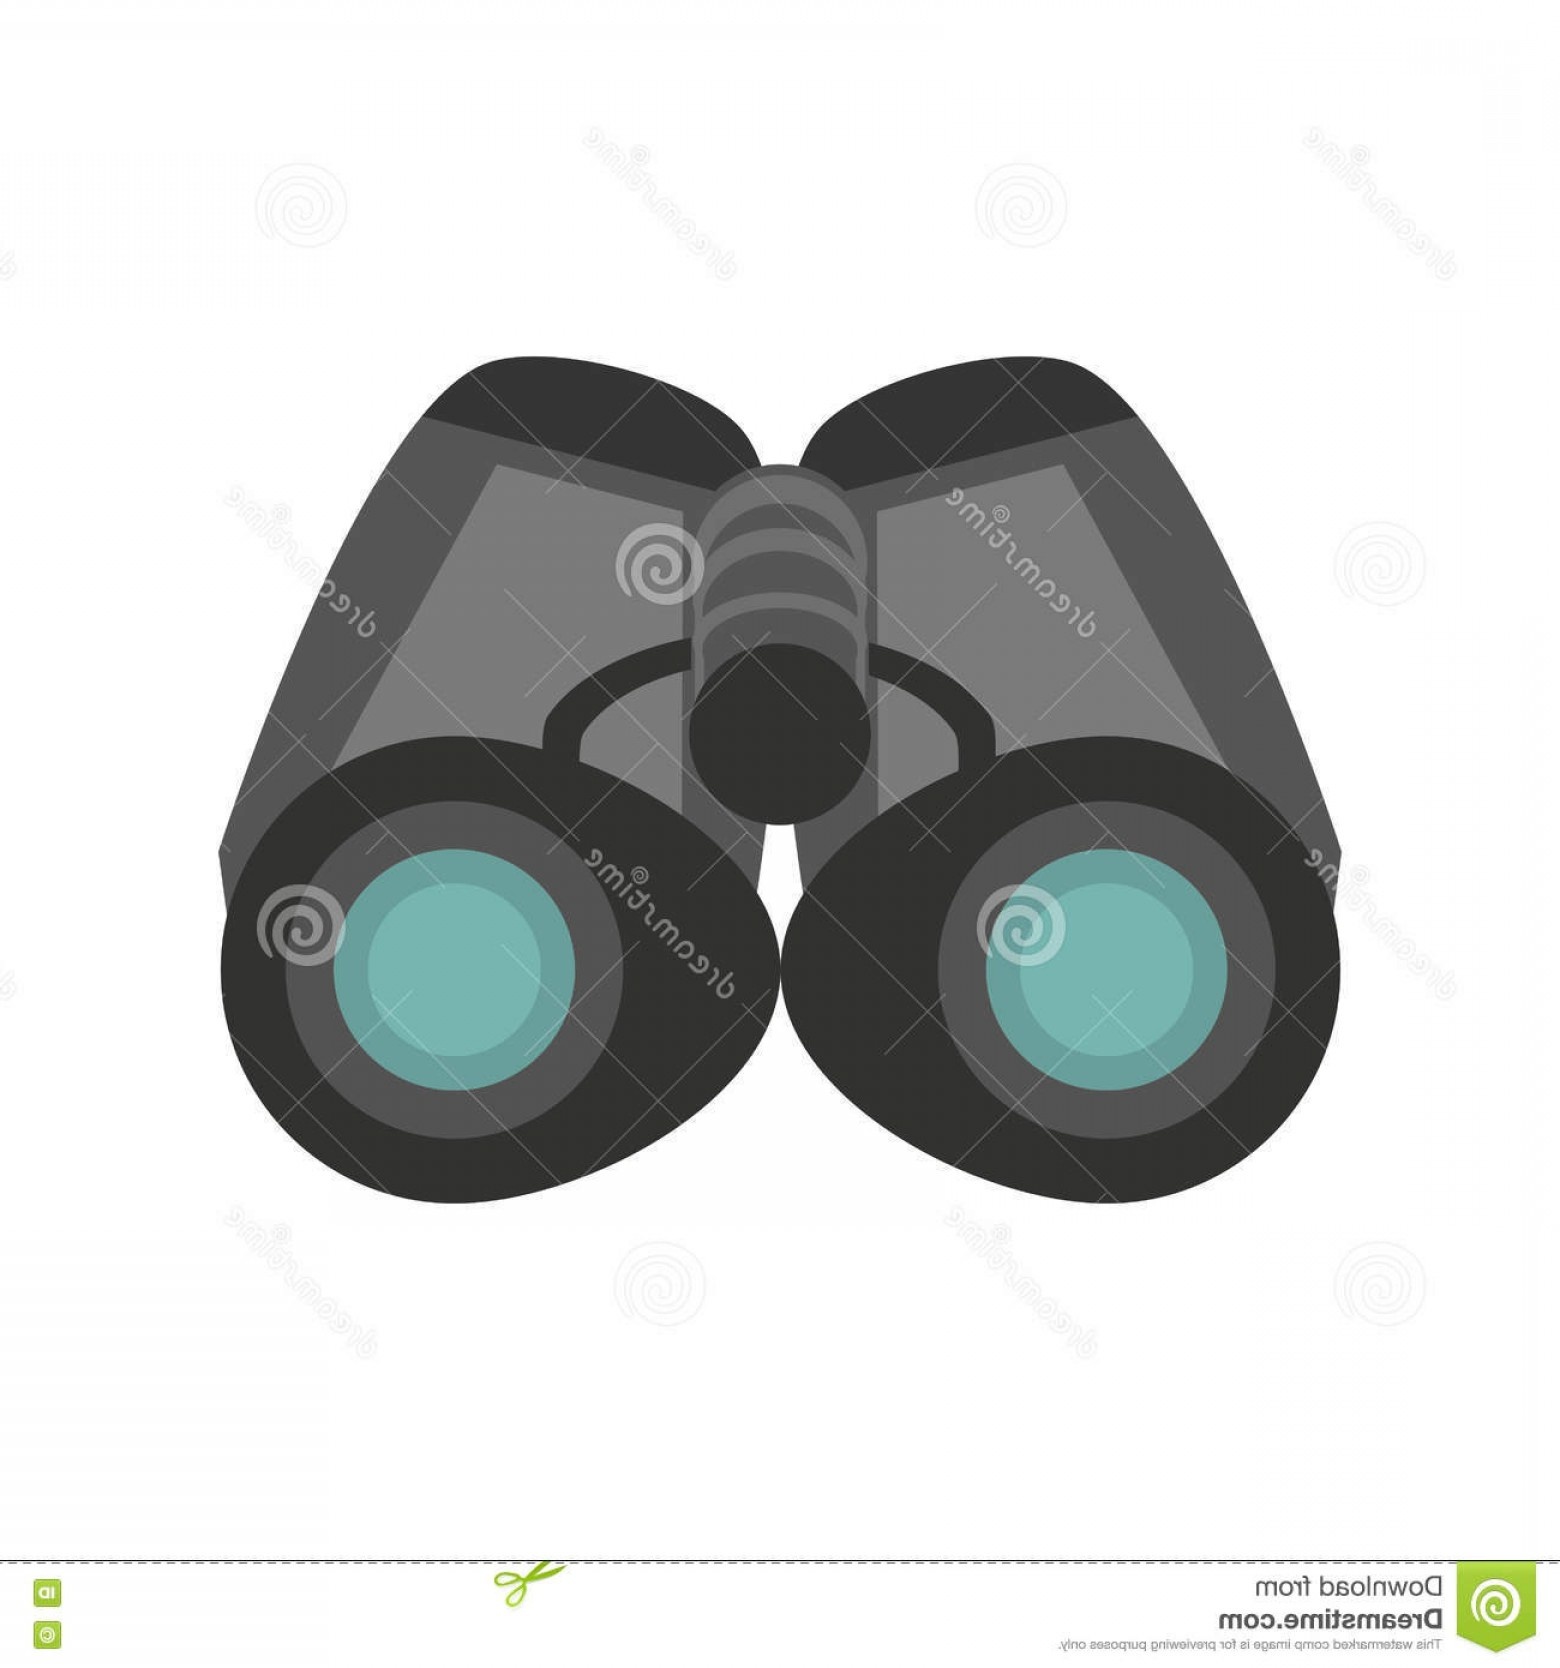 Hires Camera Lens Vector: Stock Illustration Binoculars Explorer Spyglass Observation Glasses Vector Illustration Eps Image